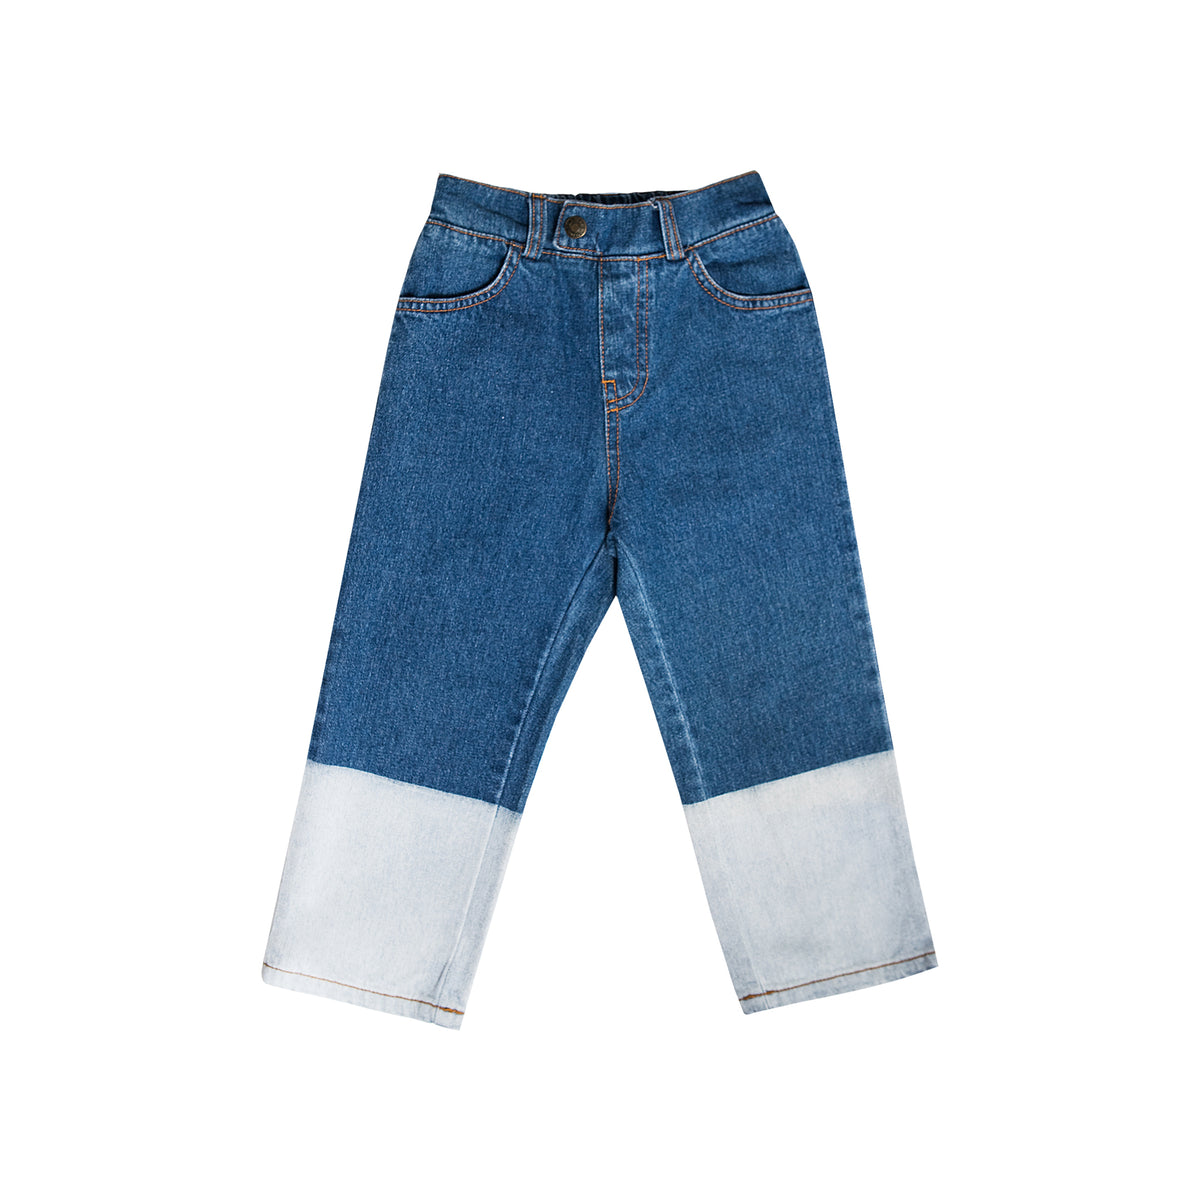 Wash blocked jeans - Mondän